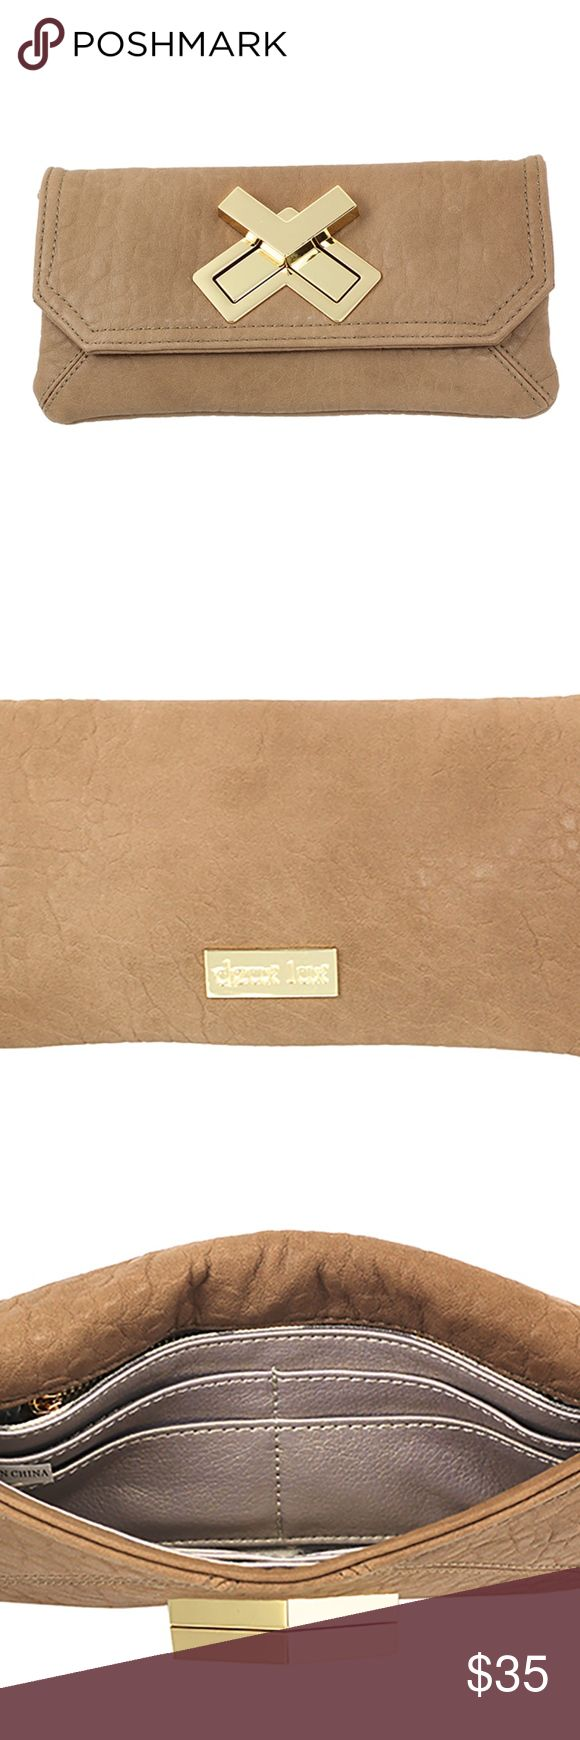 "Deux Lux Women's Double-cross Wallet Camel This double cross wallet is a Deux Lux favorite and best seller! It's fully functional interior will keep you organized. The neutral camel color will match any handbag or outfit and can be used as a small clutch on a fancy night out! Front Double Cross Closure 1 Front Slip Pocket, 8 credit card and ID slots, 1 Back Zip Pocket, 2 Bill Dividers Faux Vegan Leather Chevron Print Canvas Lining 9""L x 5""H Deux Lux Bags Wallets"